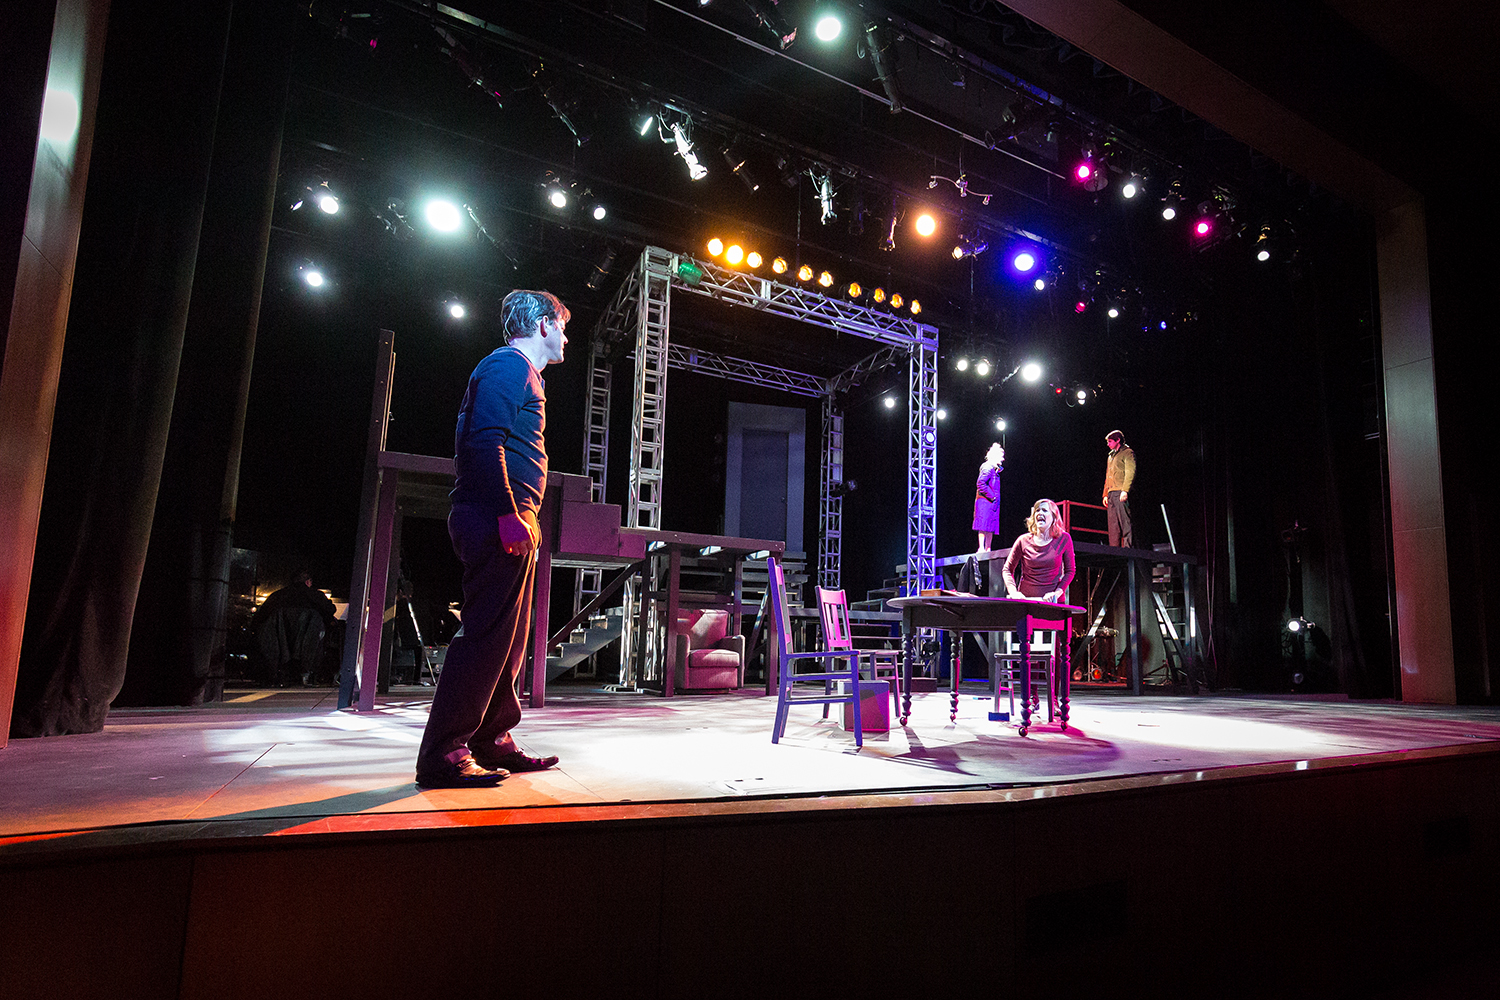 Members of the City Circle Acting Company perform in 'Next to Normal' at the Coralville Center for the Performing Arts in Coralville, IA on Thursday, Feb. 9, 2017.